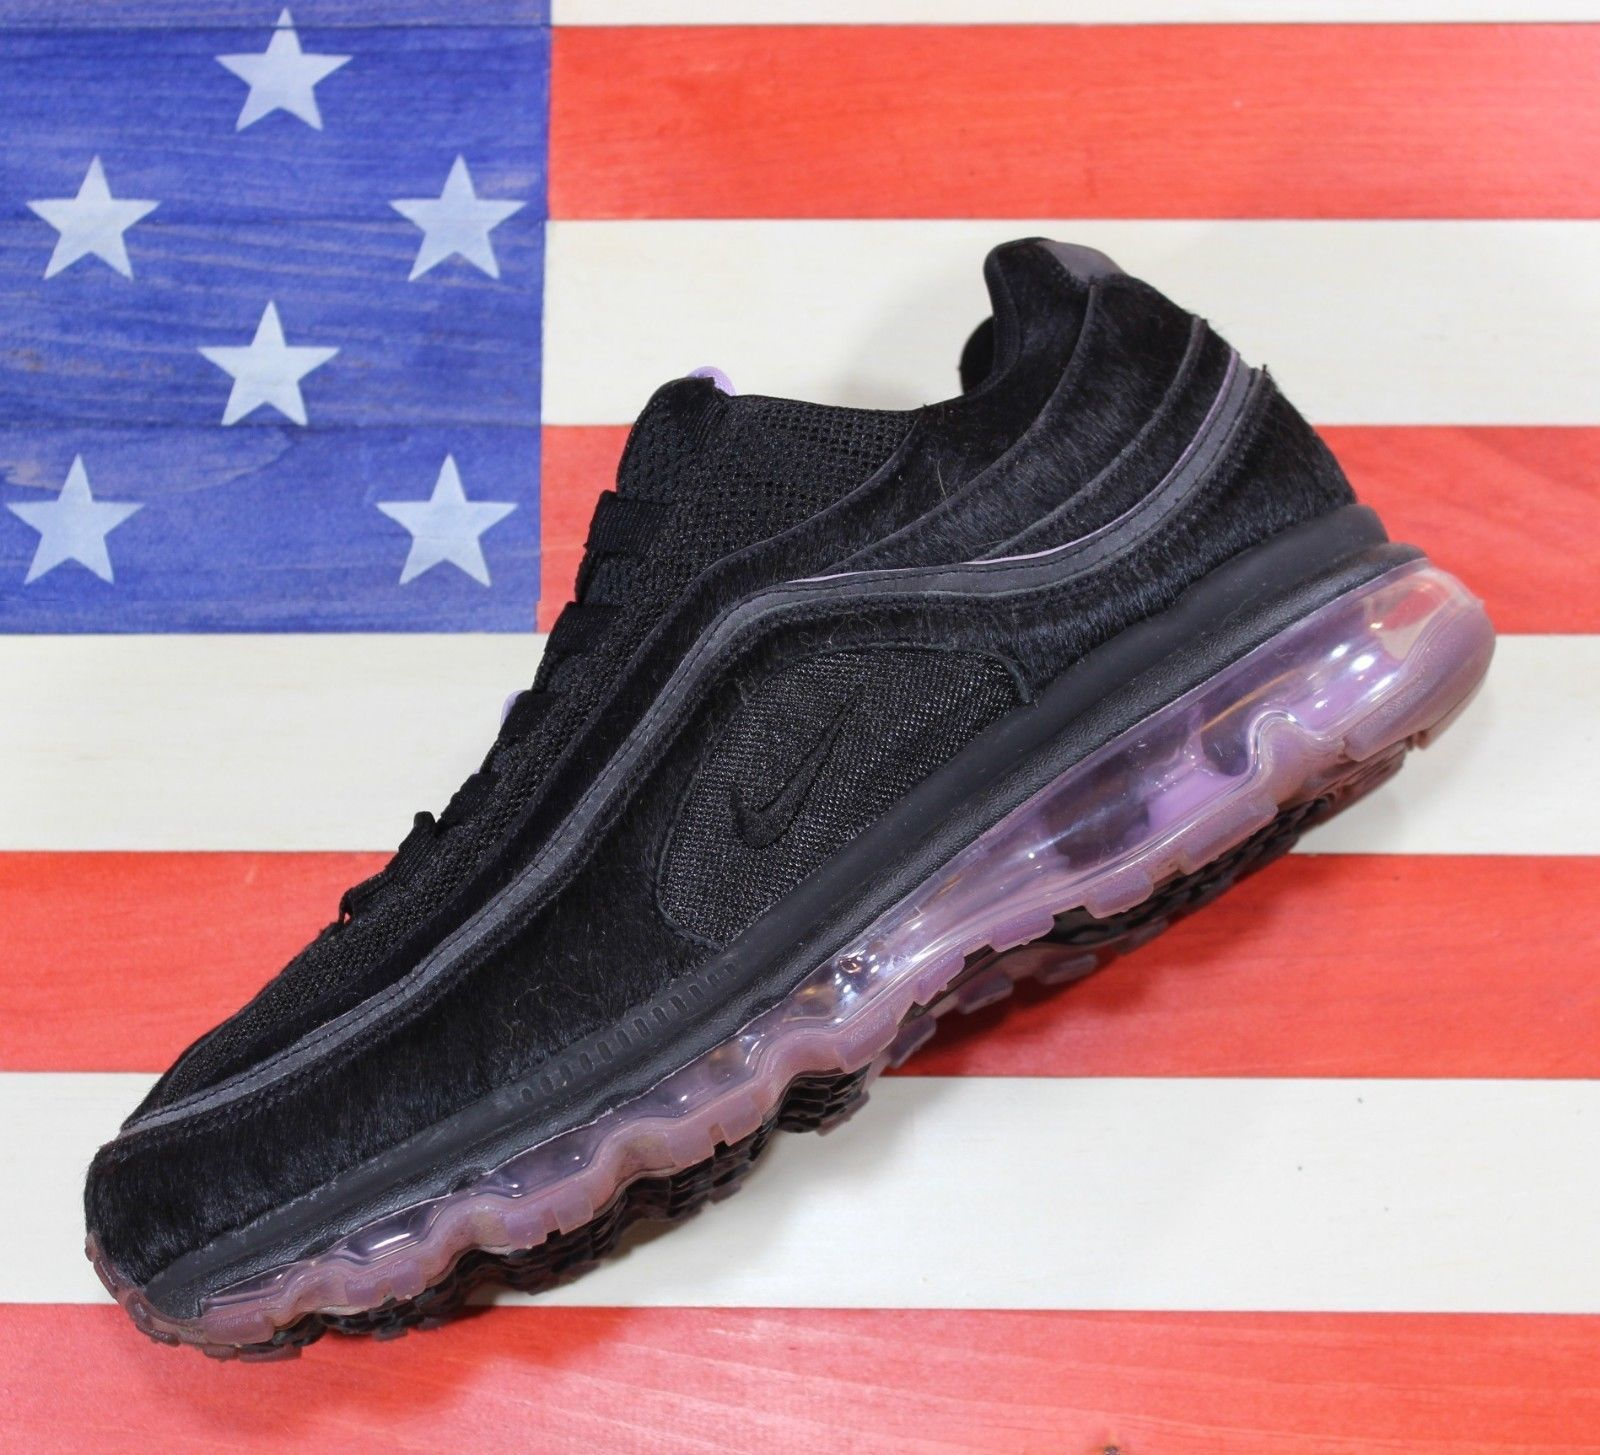 premium selection d69ef 0eb66 Nike Air Max 24 7 Black Pink Pony Hair and 44 similar items